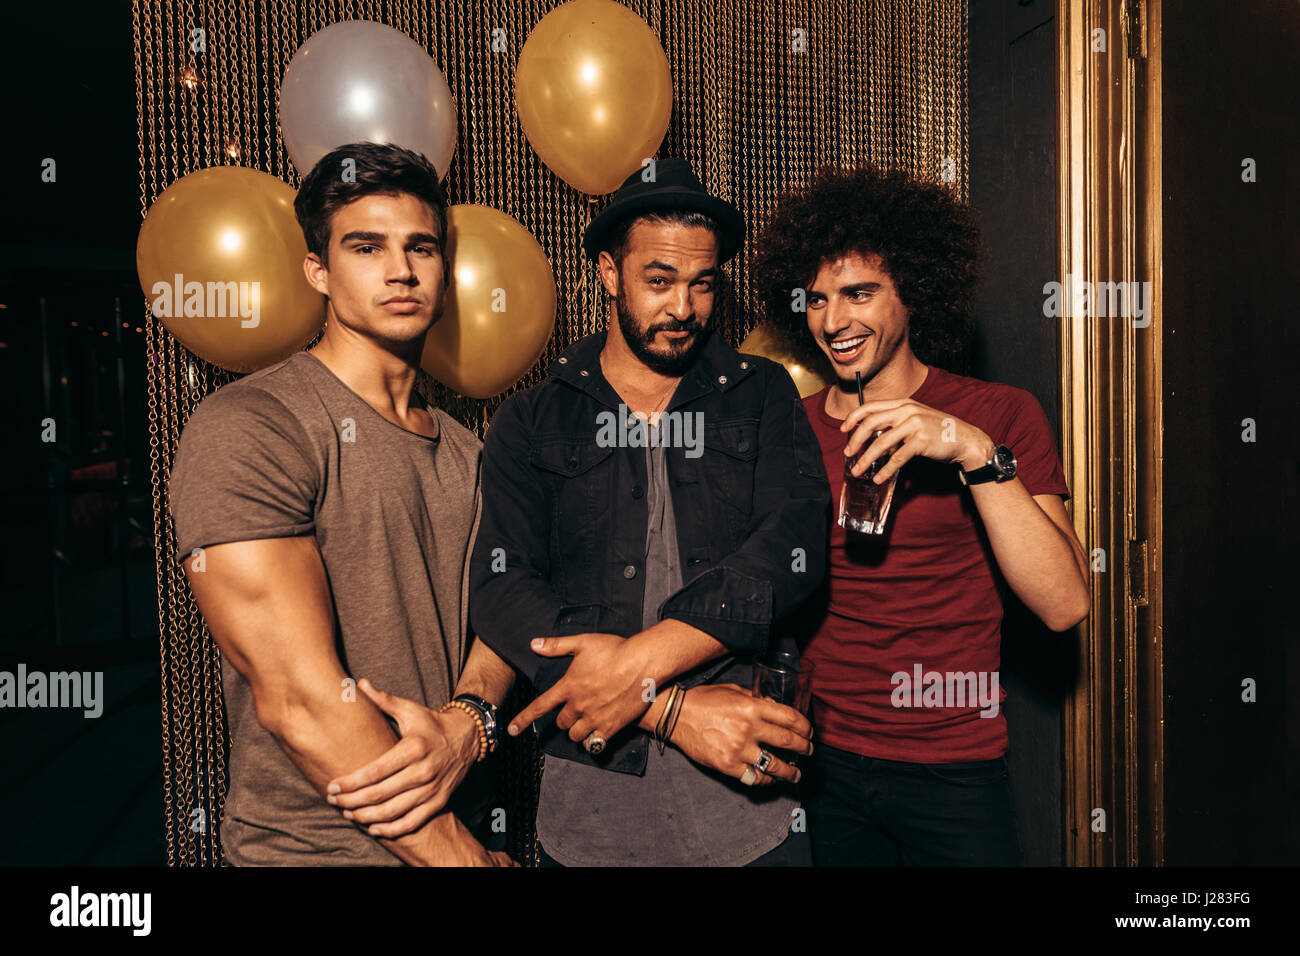 Portrait of three young men partying at the nightclub. Group of men having good times at pub. - Stock Image